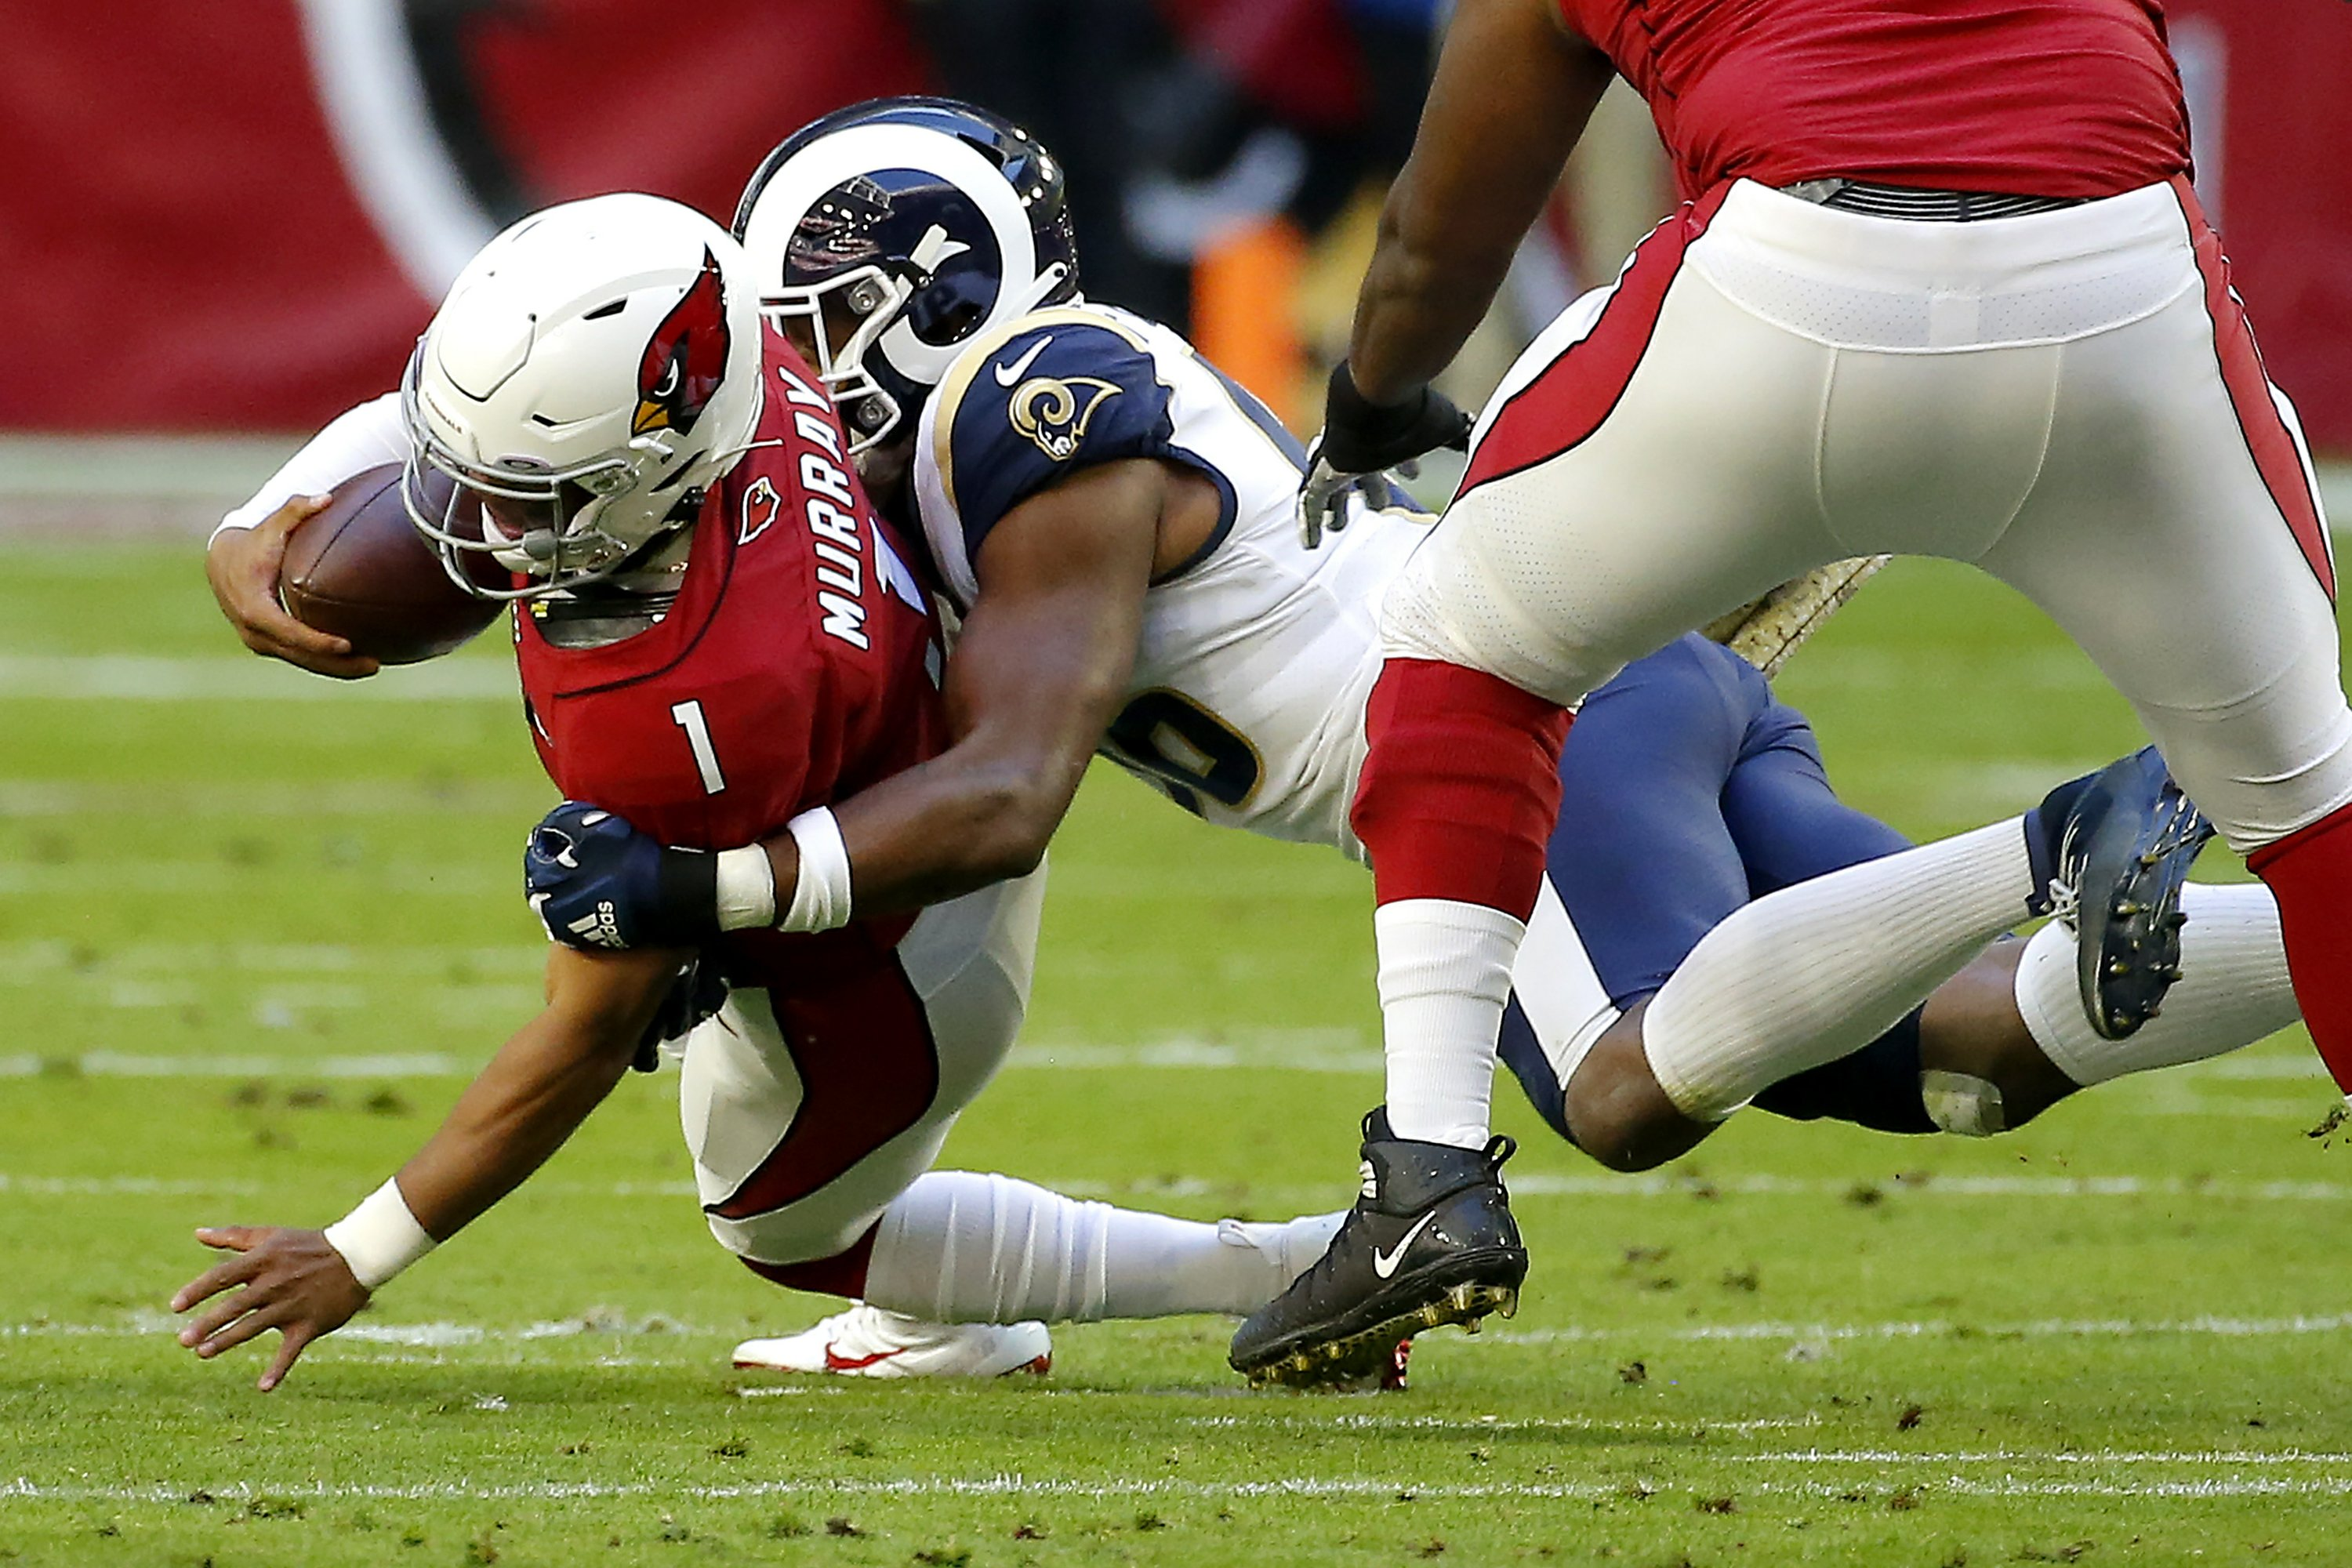 Steelers try to maintain momentum vs. struggling Cardinals